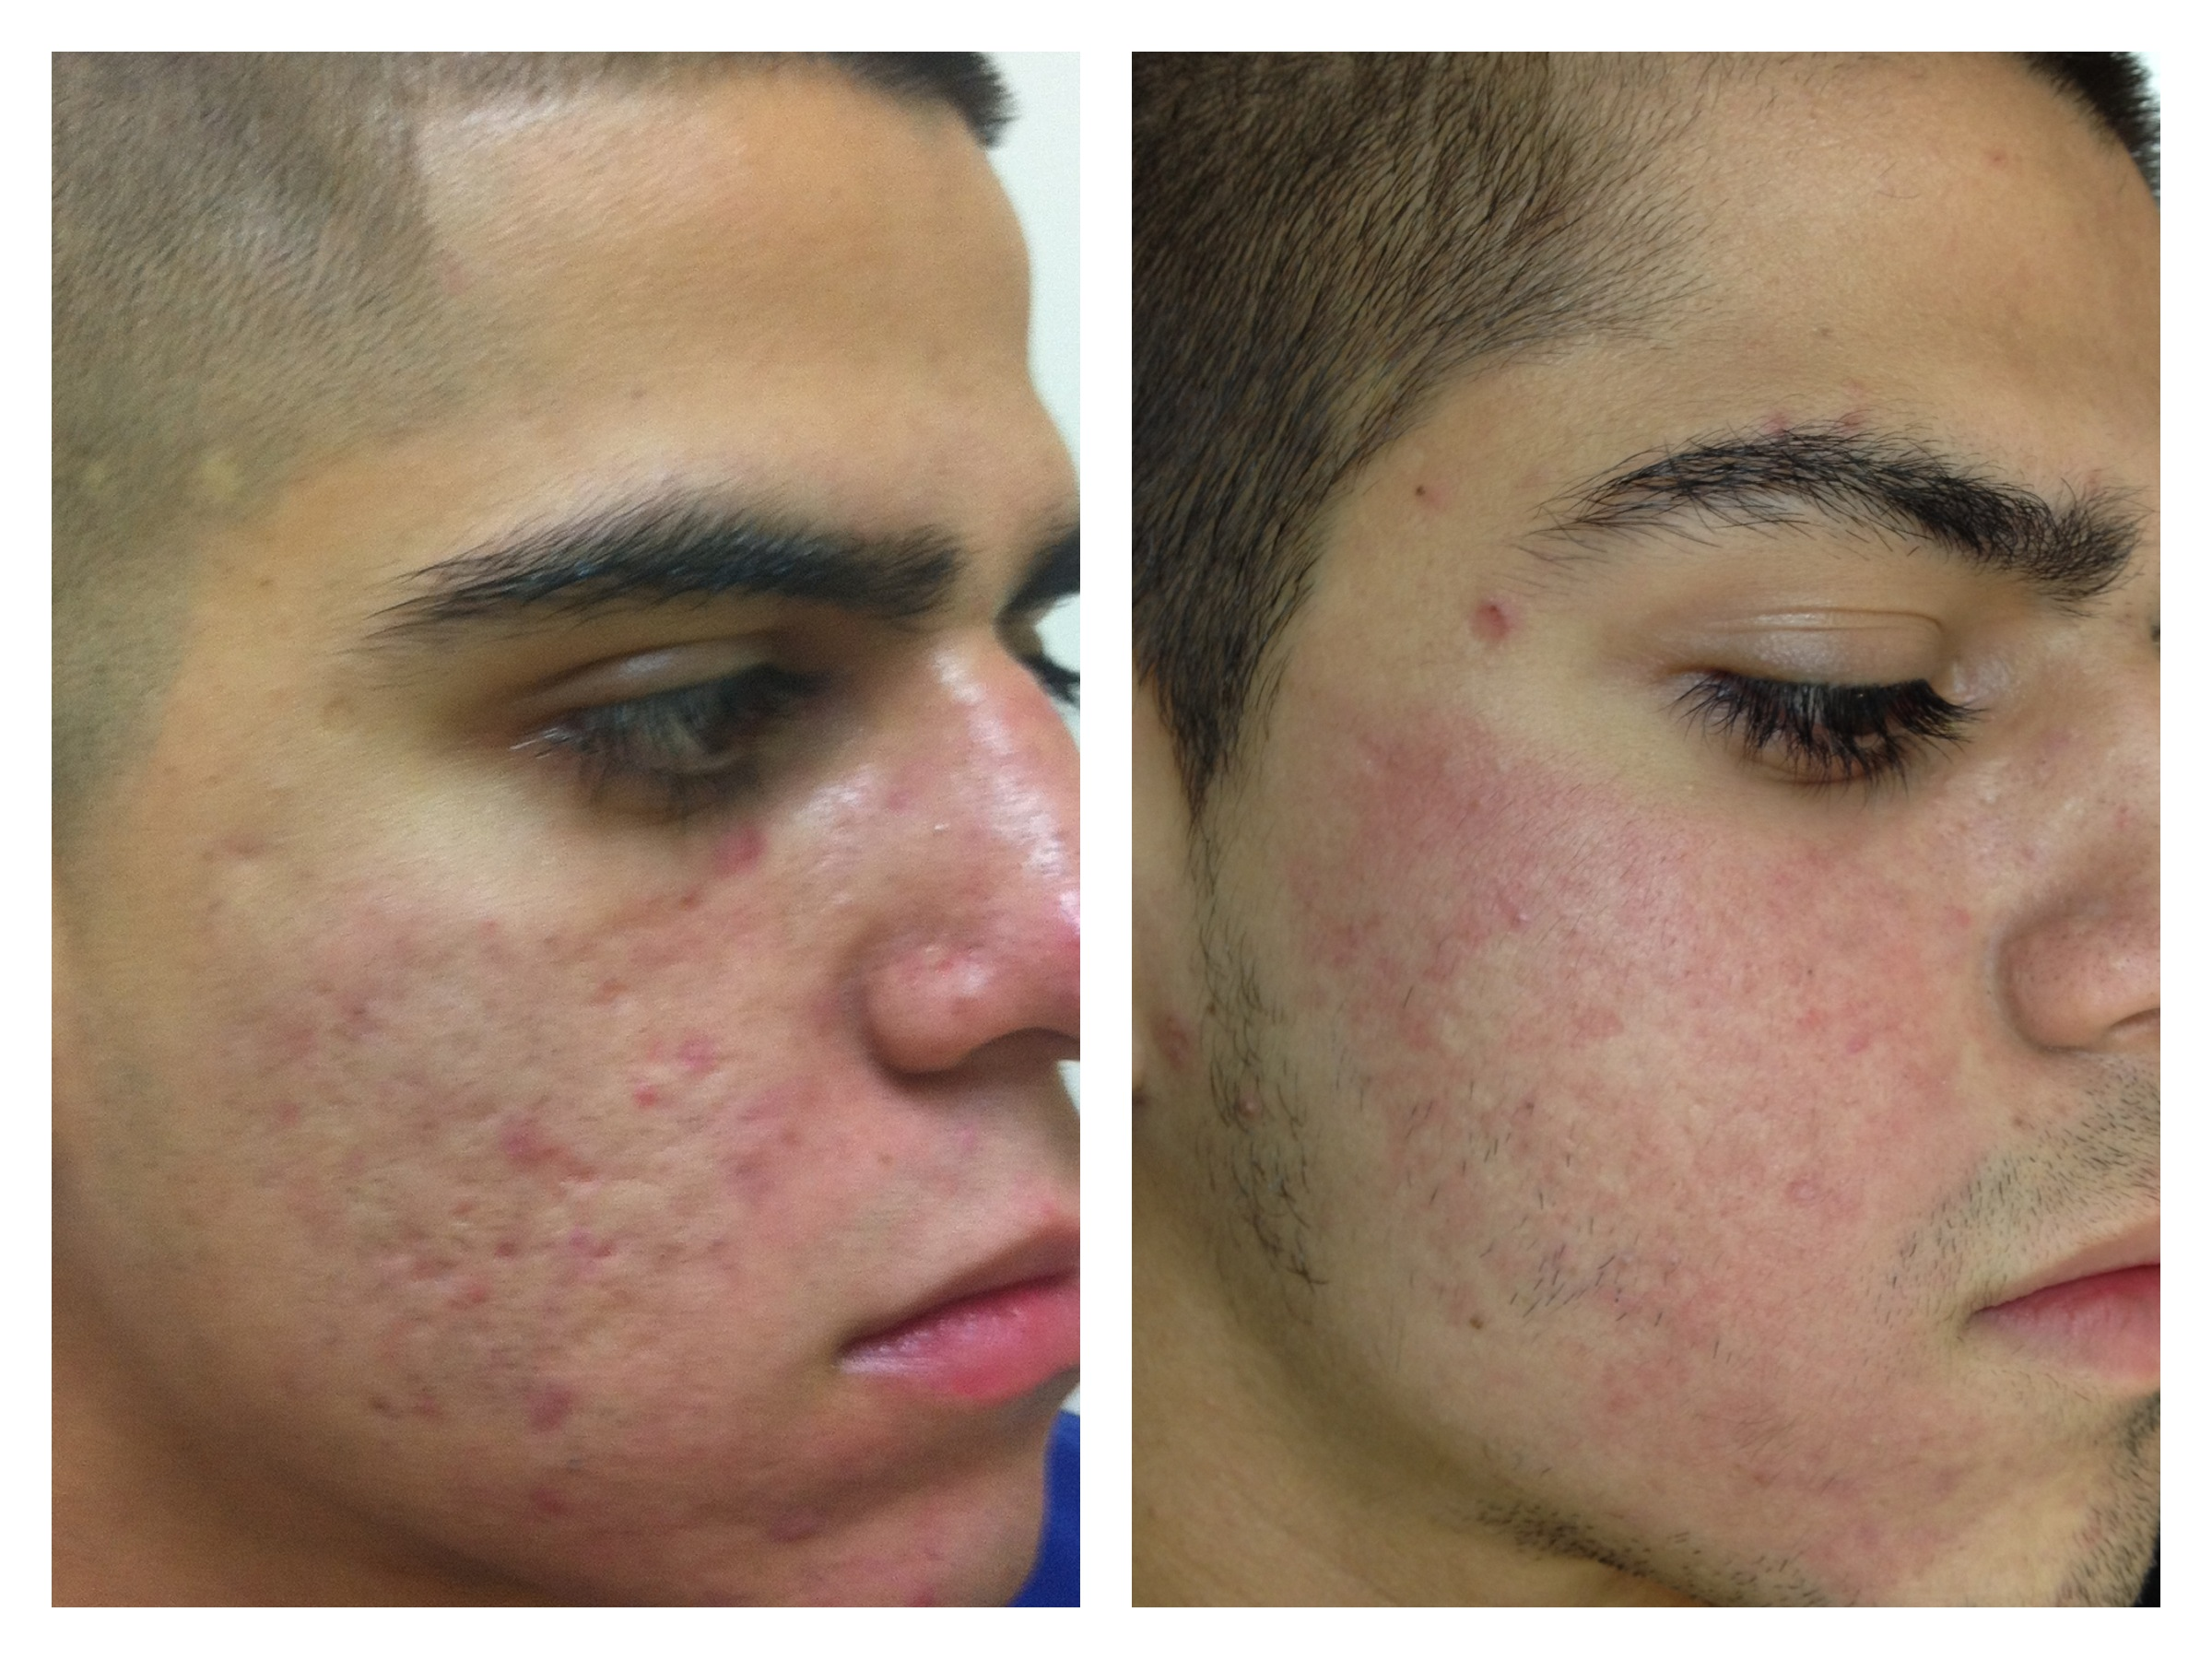 Co2 Laser Resurfacing Results For Acne Scars: